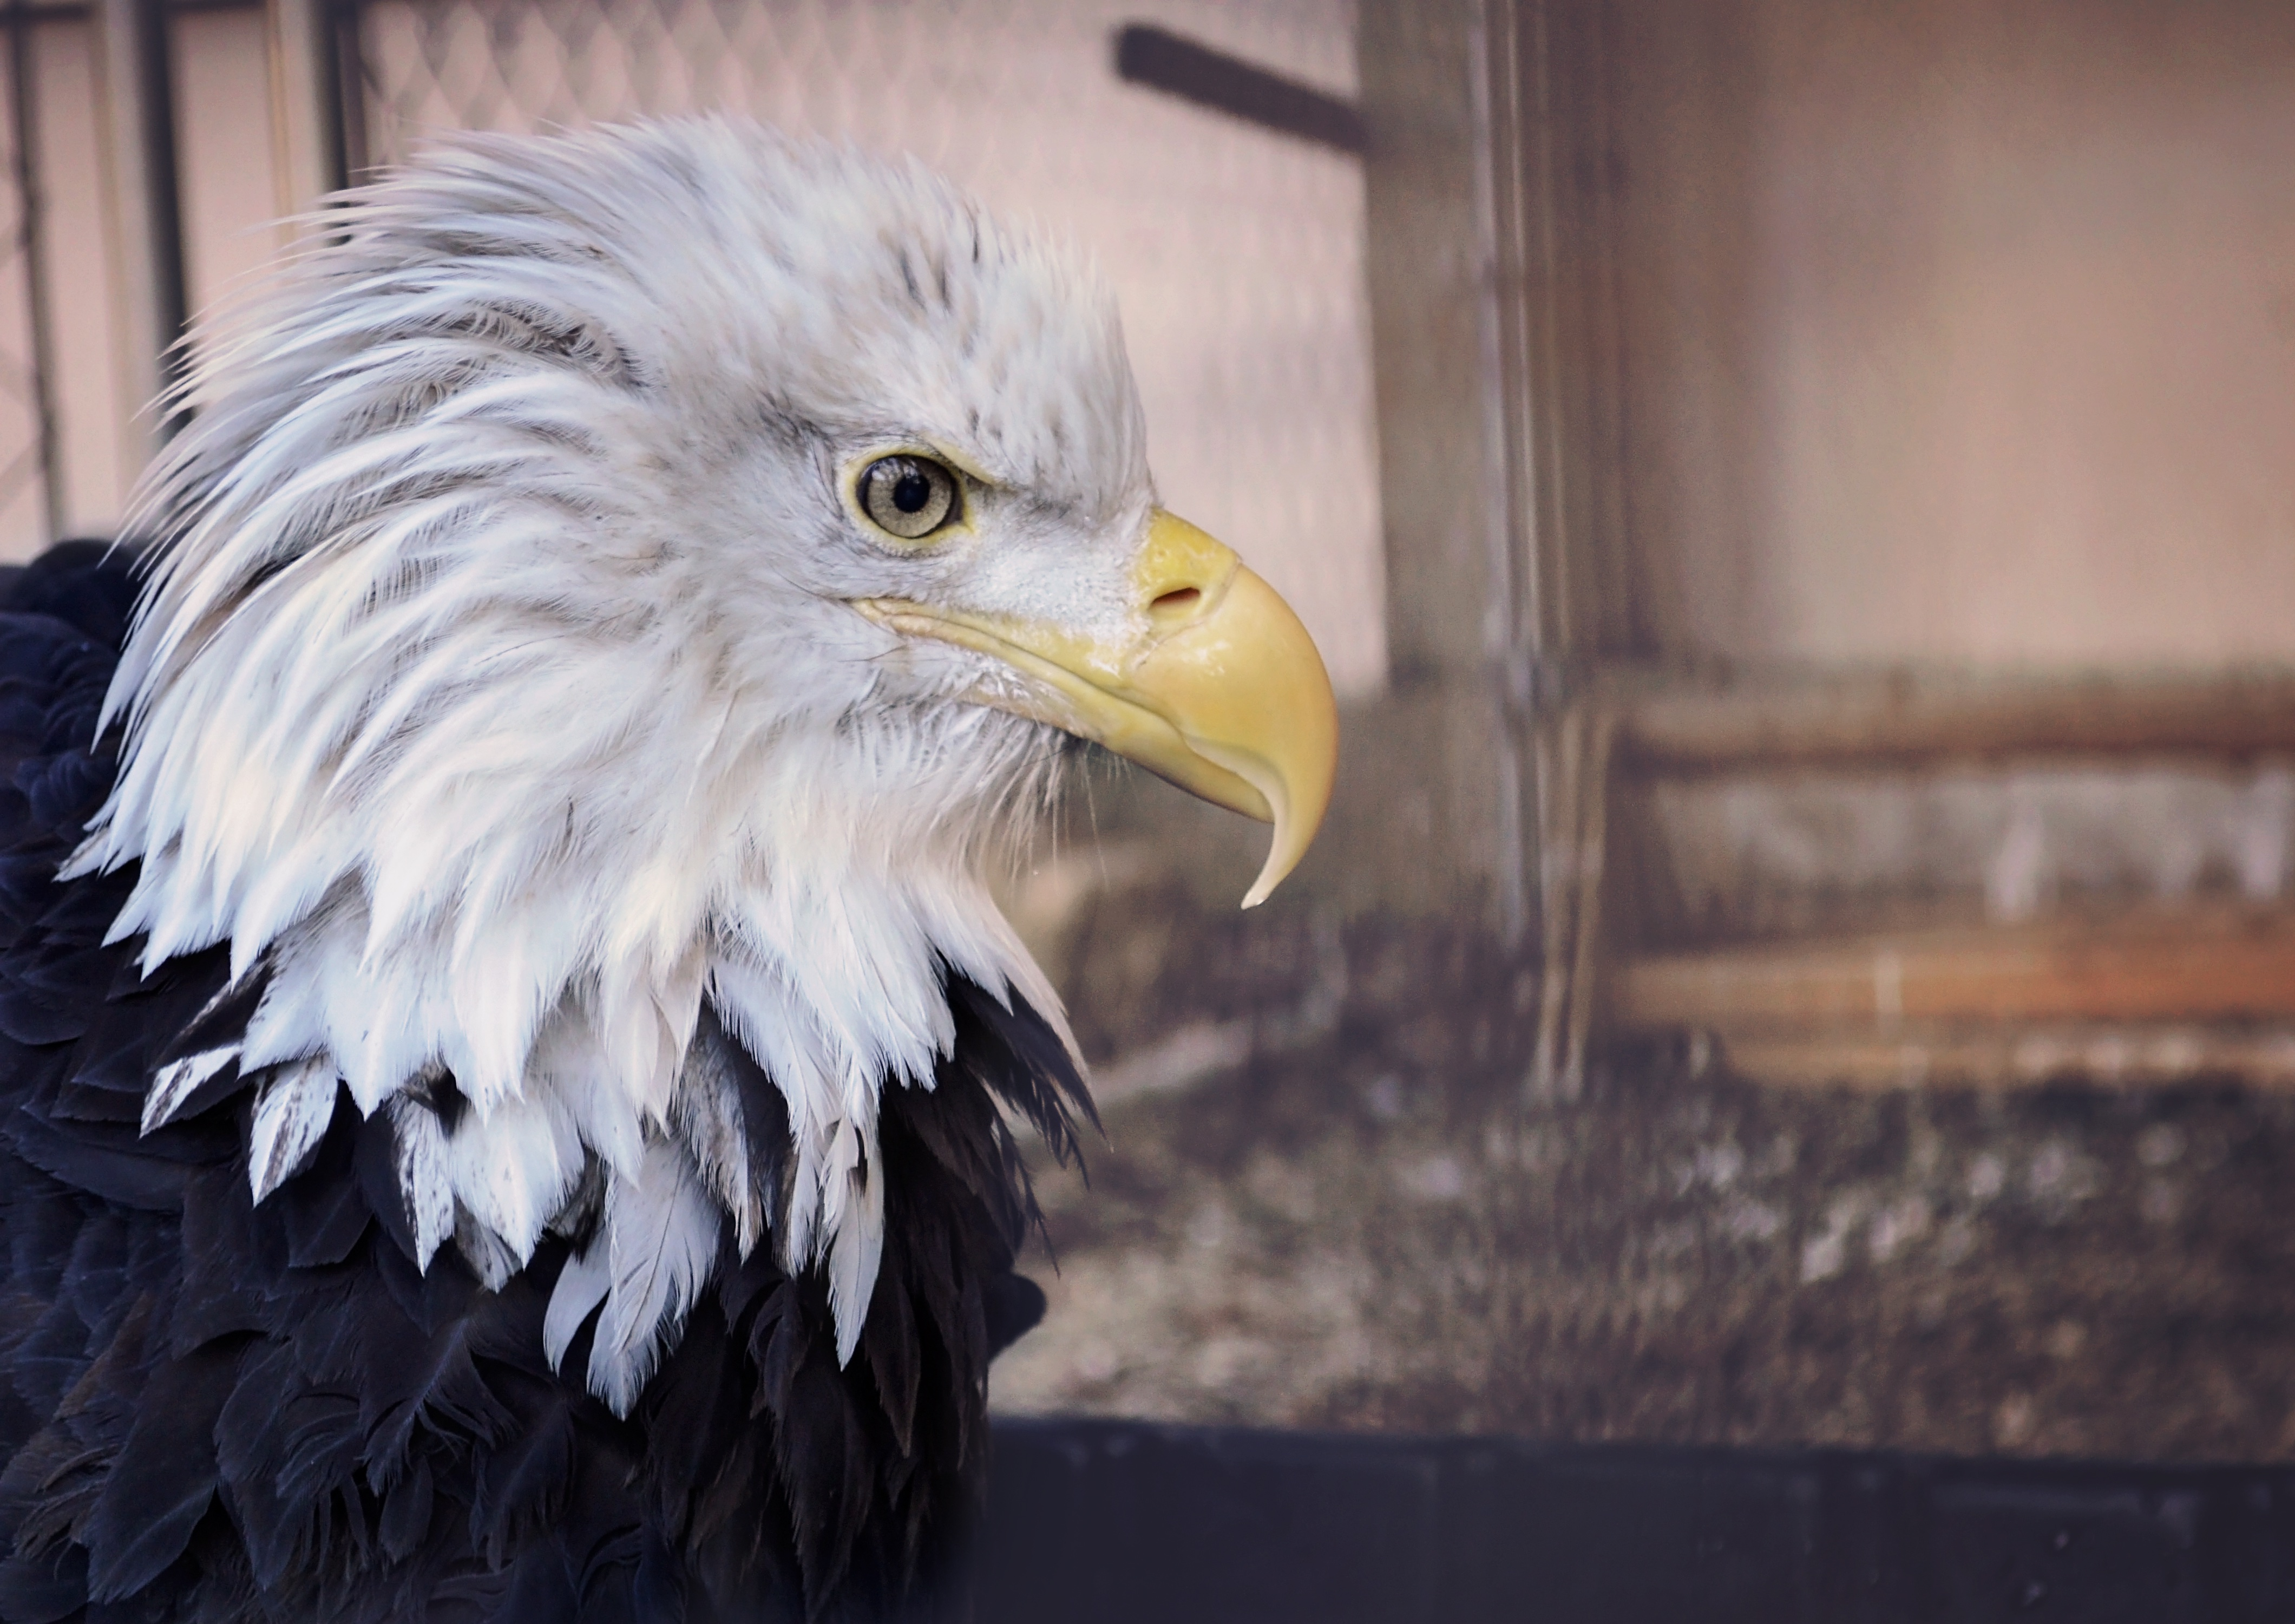 120809 download wallpaper Animals, Bald Eagle, White-Headed Eagle, Eagle, Bird, Predator, Beak screensavers and pictures for free